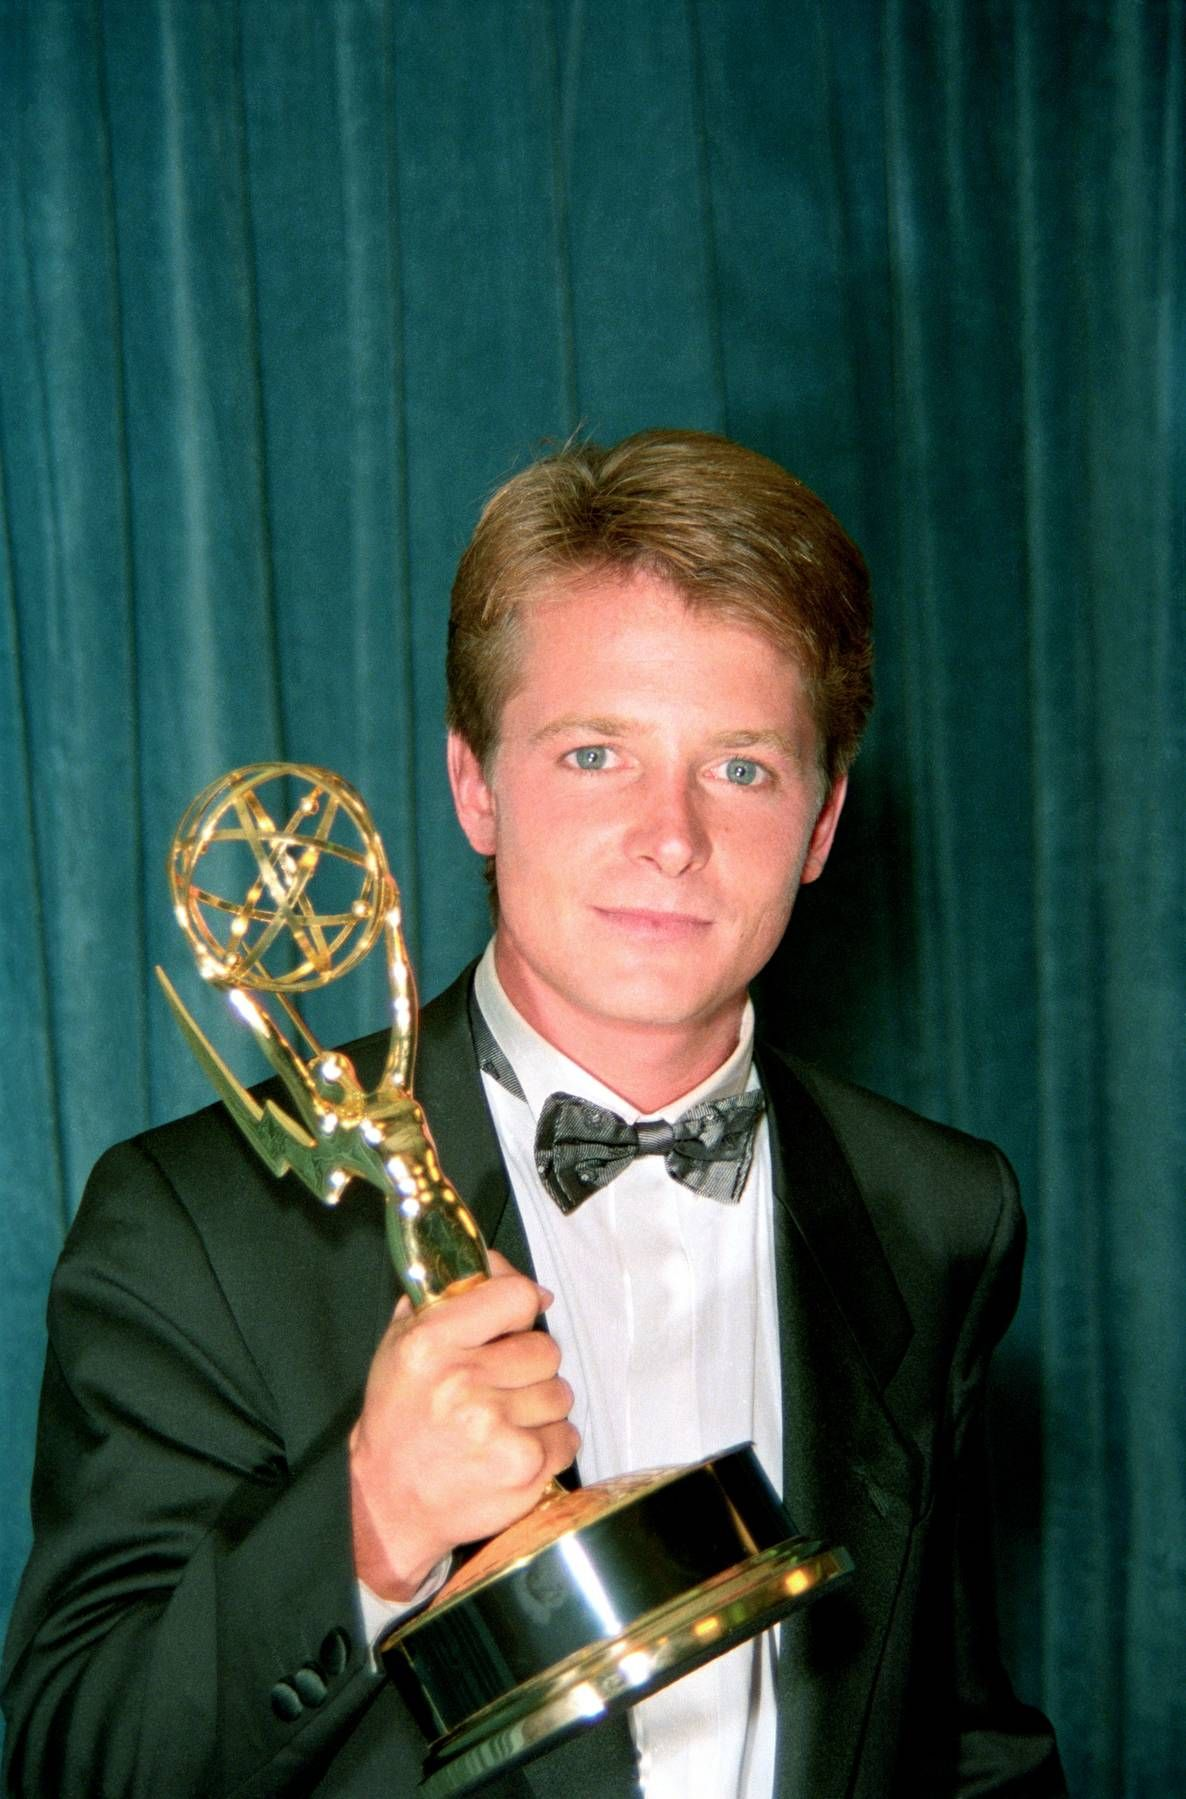 slideshow a history of emmy winners� award pda foxes